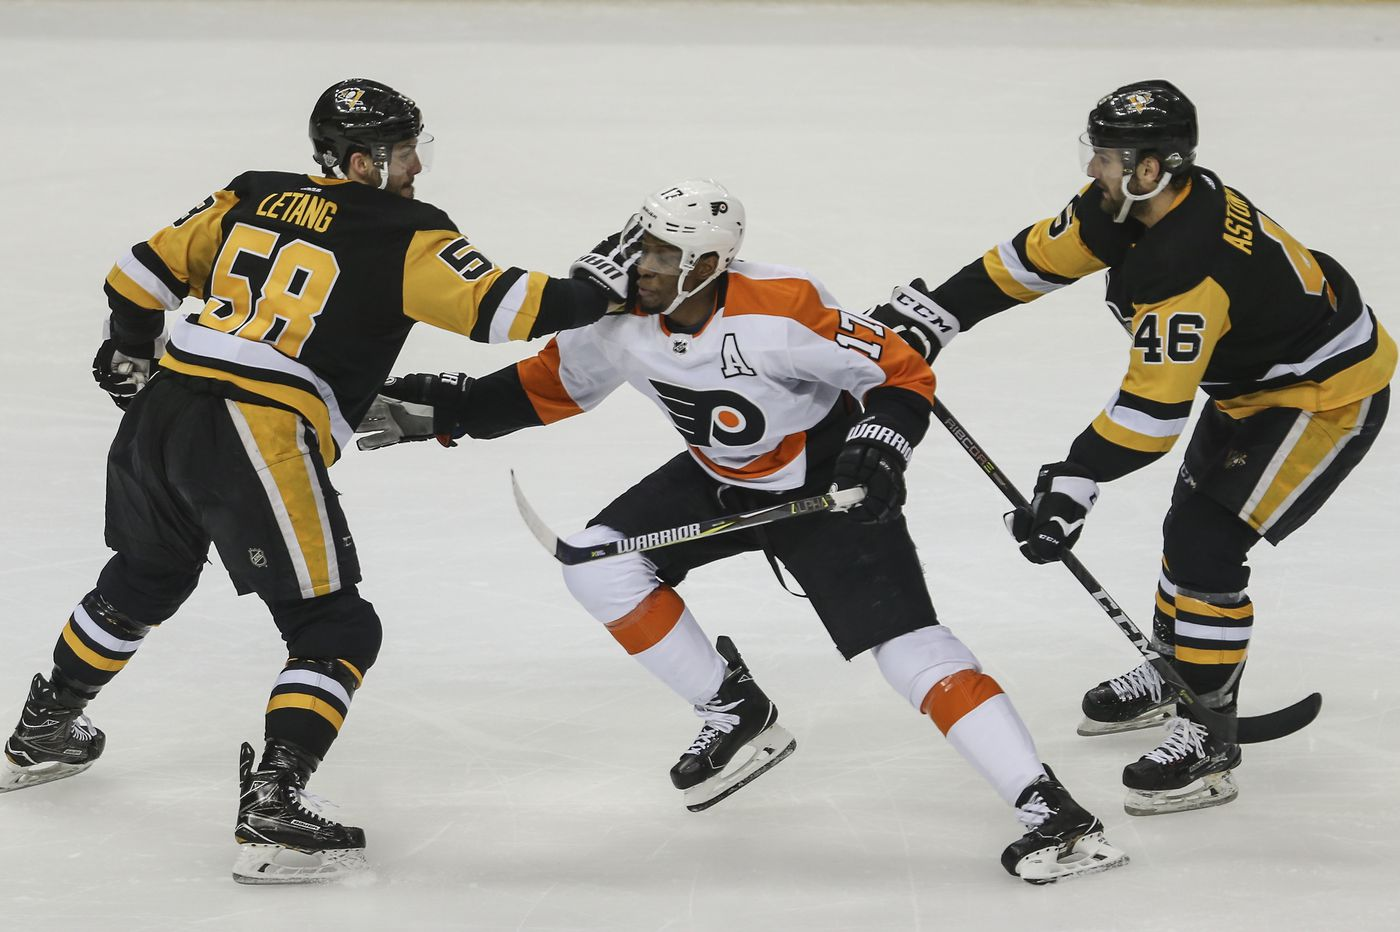 James van Riemsdyk, Wayne Simmonds moved to Flyers' second line ahead of game at Pittsburgh Penguins